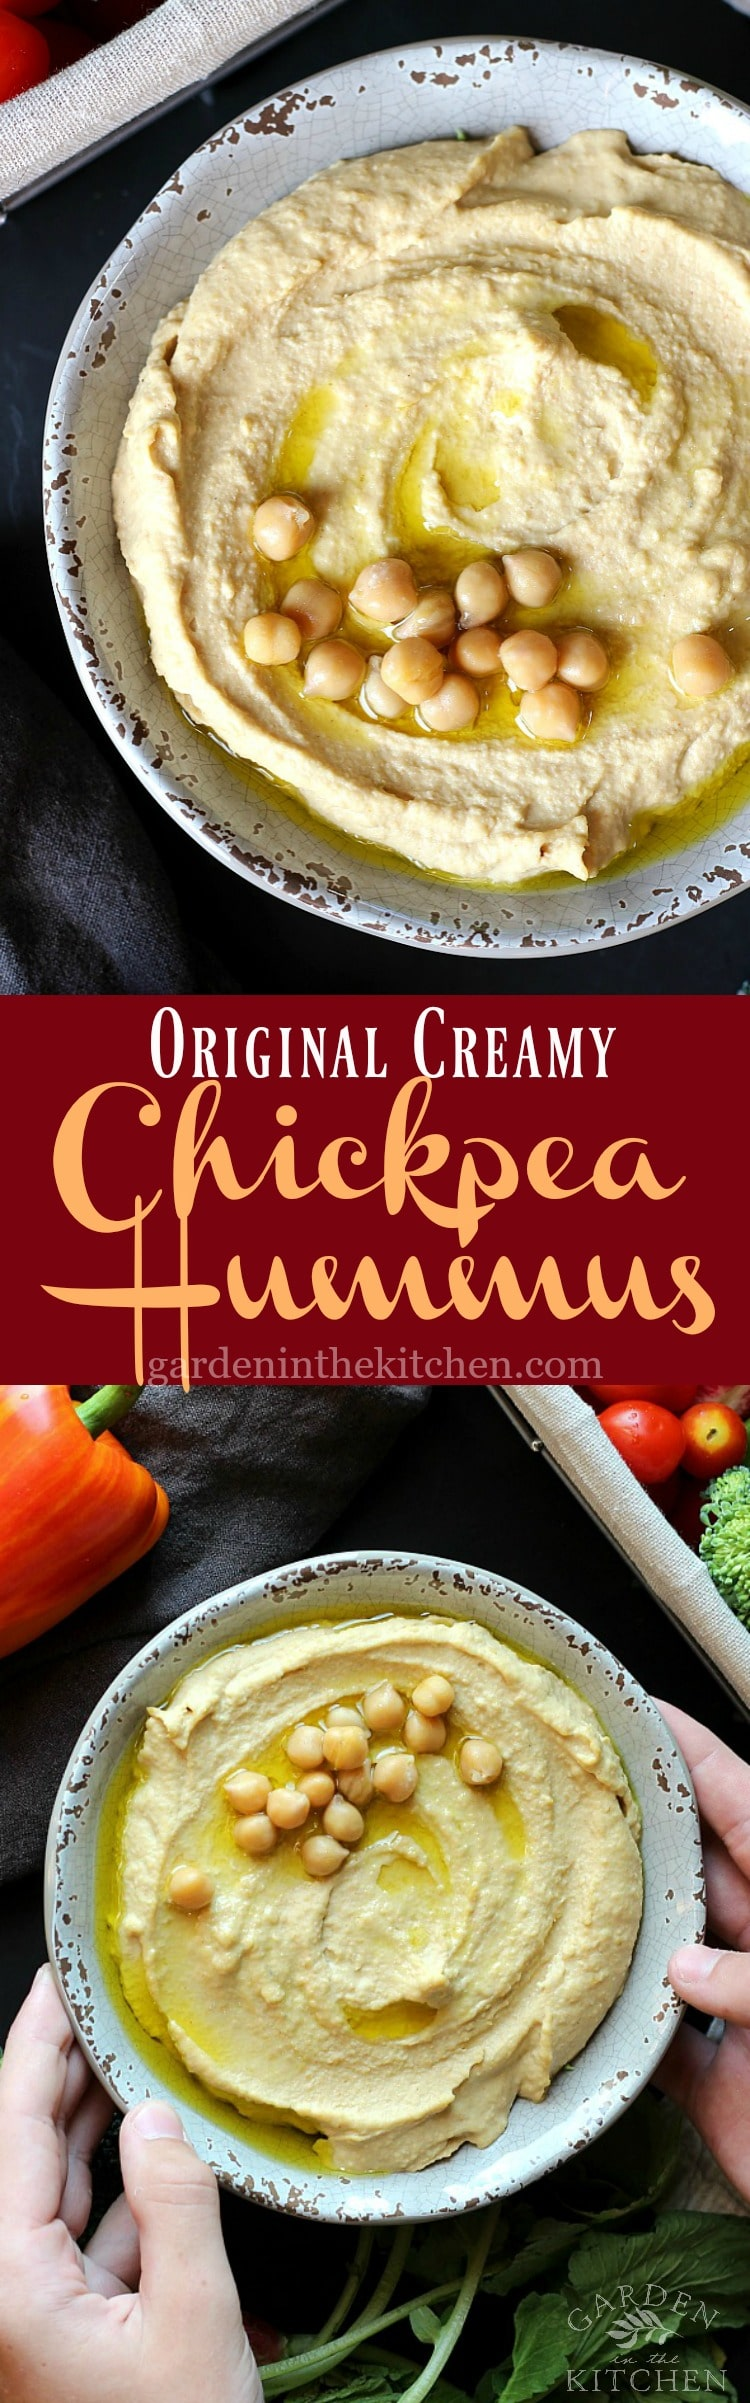 Original Creamy Chickpea Hummus | Garden in the Kitchen